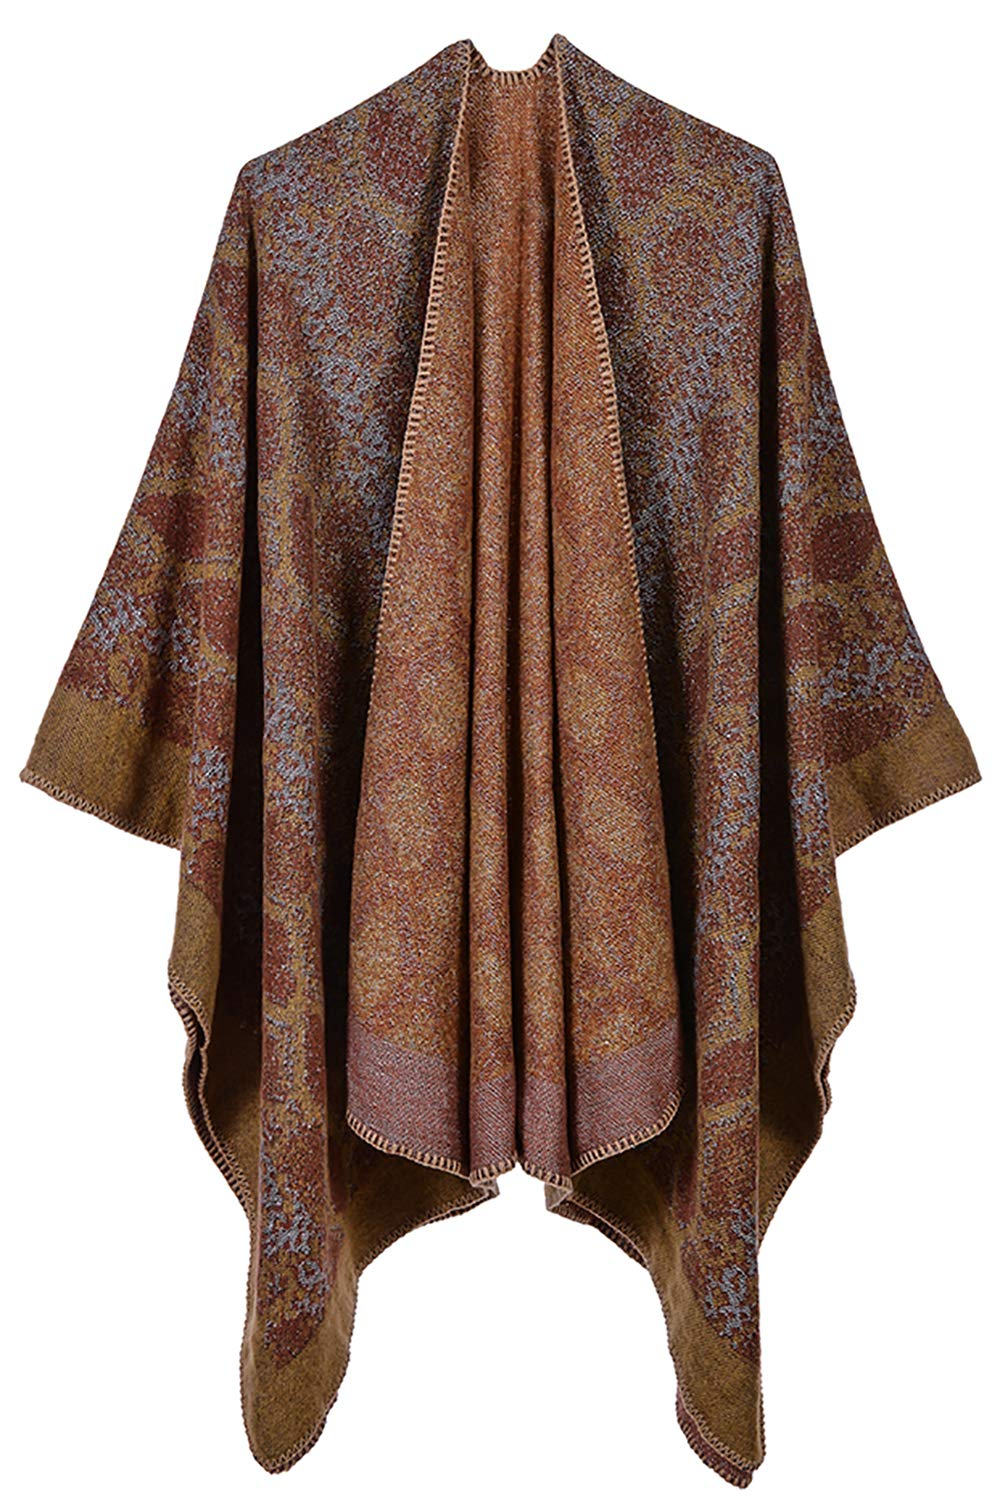 Women's Poncho Cape Shawl Cardigans Open Front Leopard Print Blanket Shawls and Wraps (Snakeskin pattern yellow)